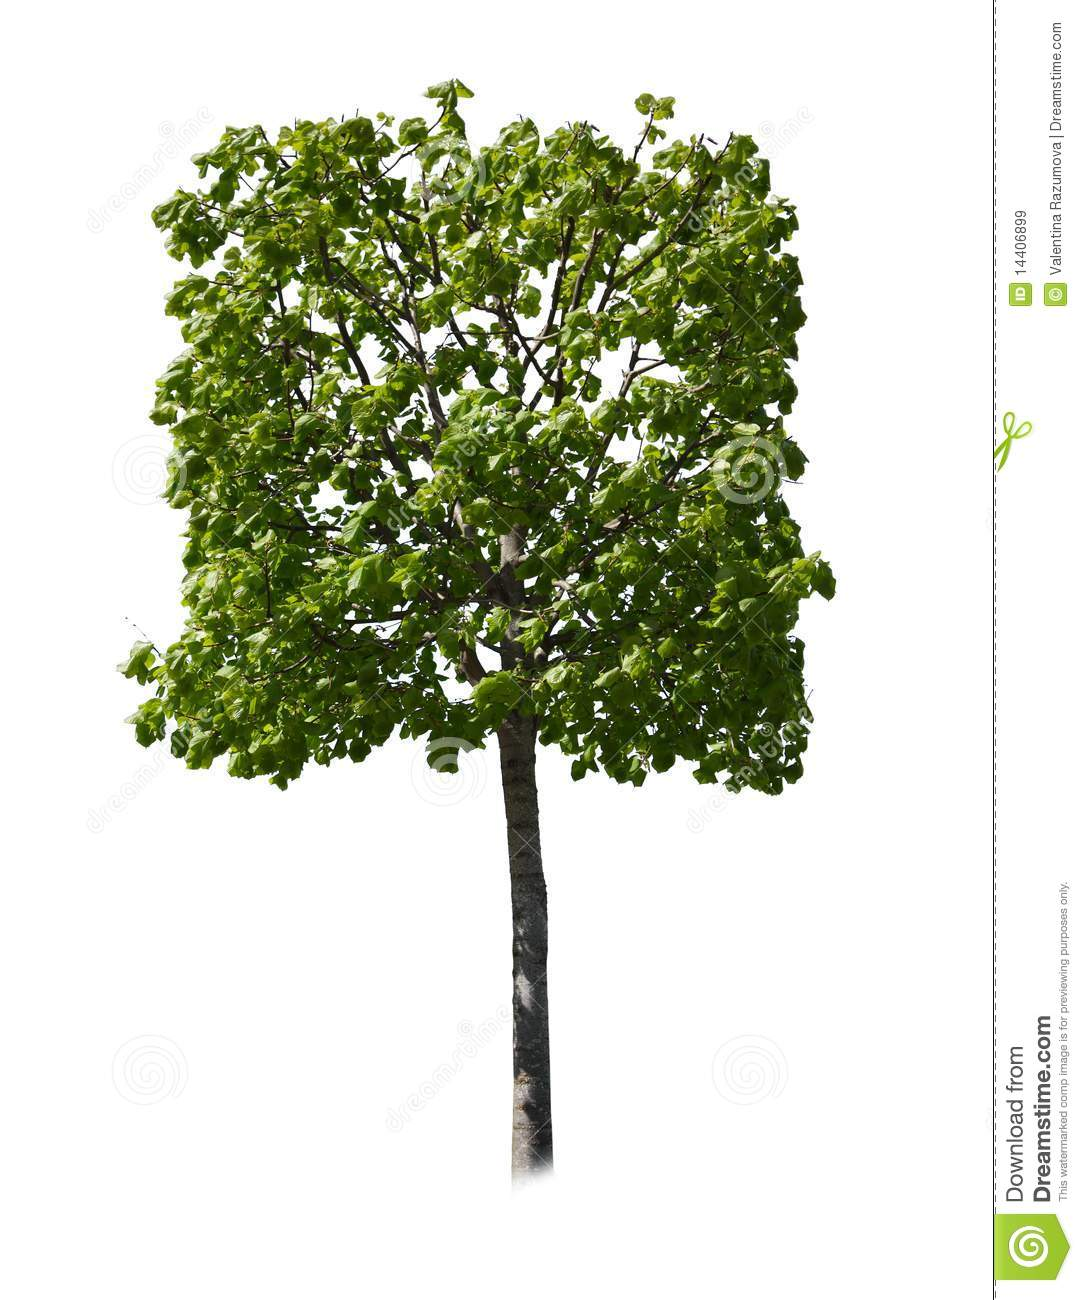 Square Tree Royalty Free Stock Images  Image 14406899